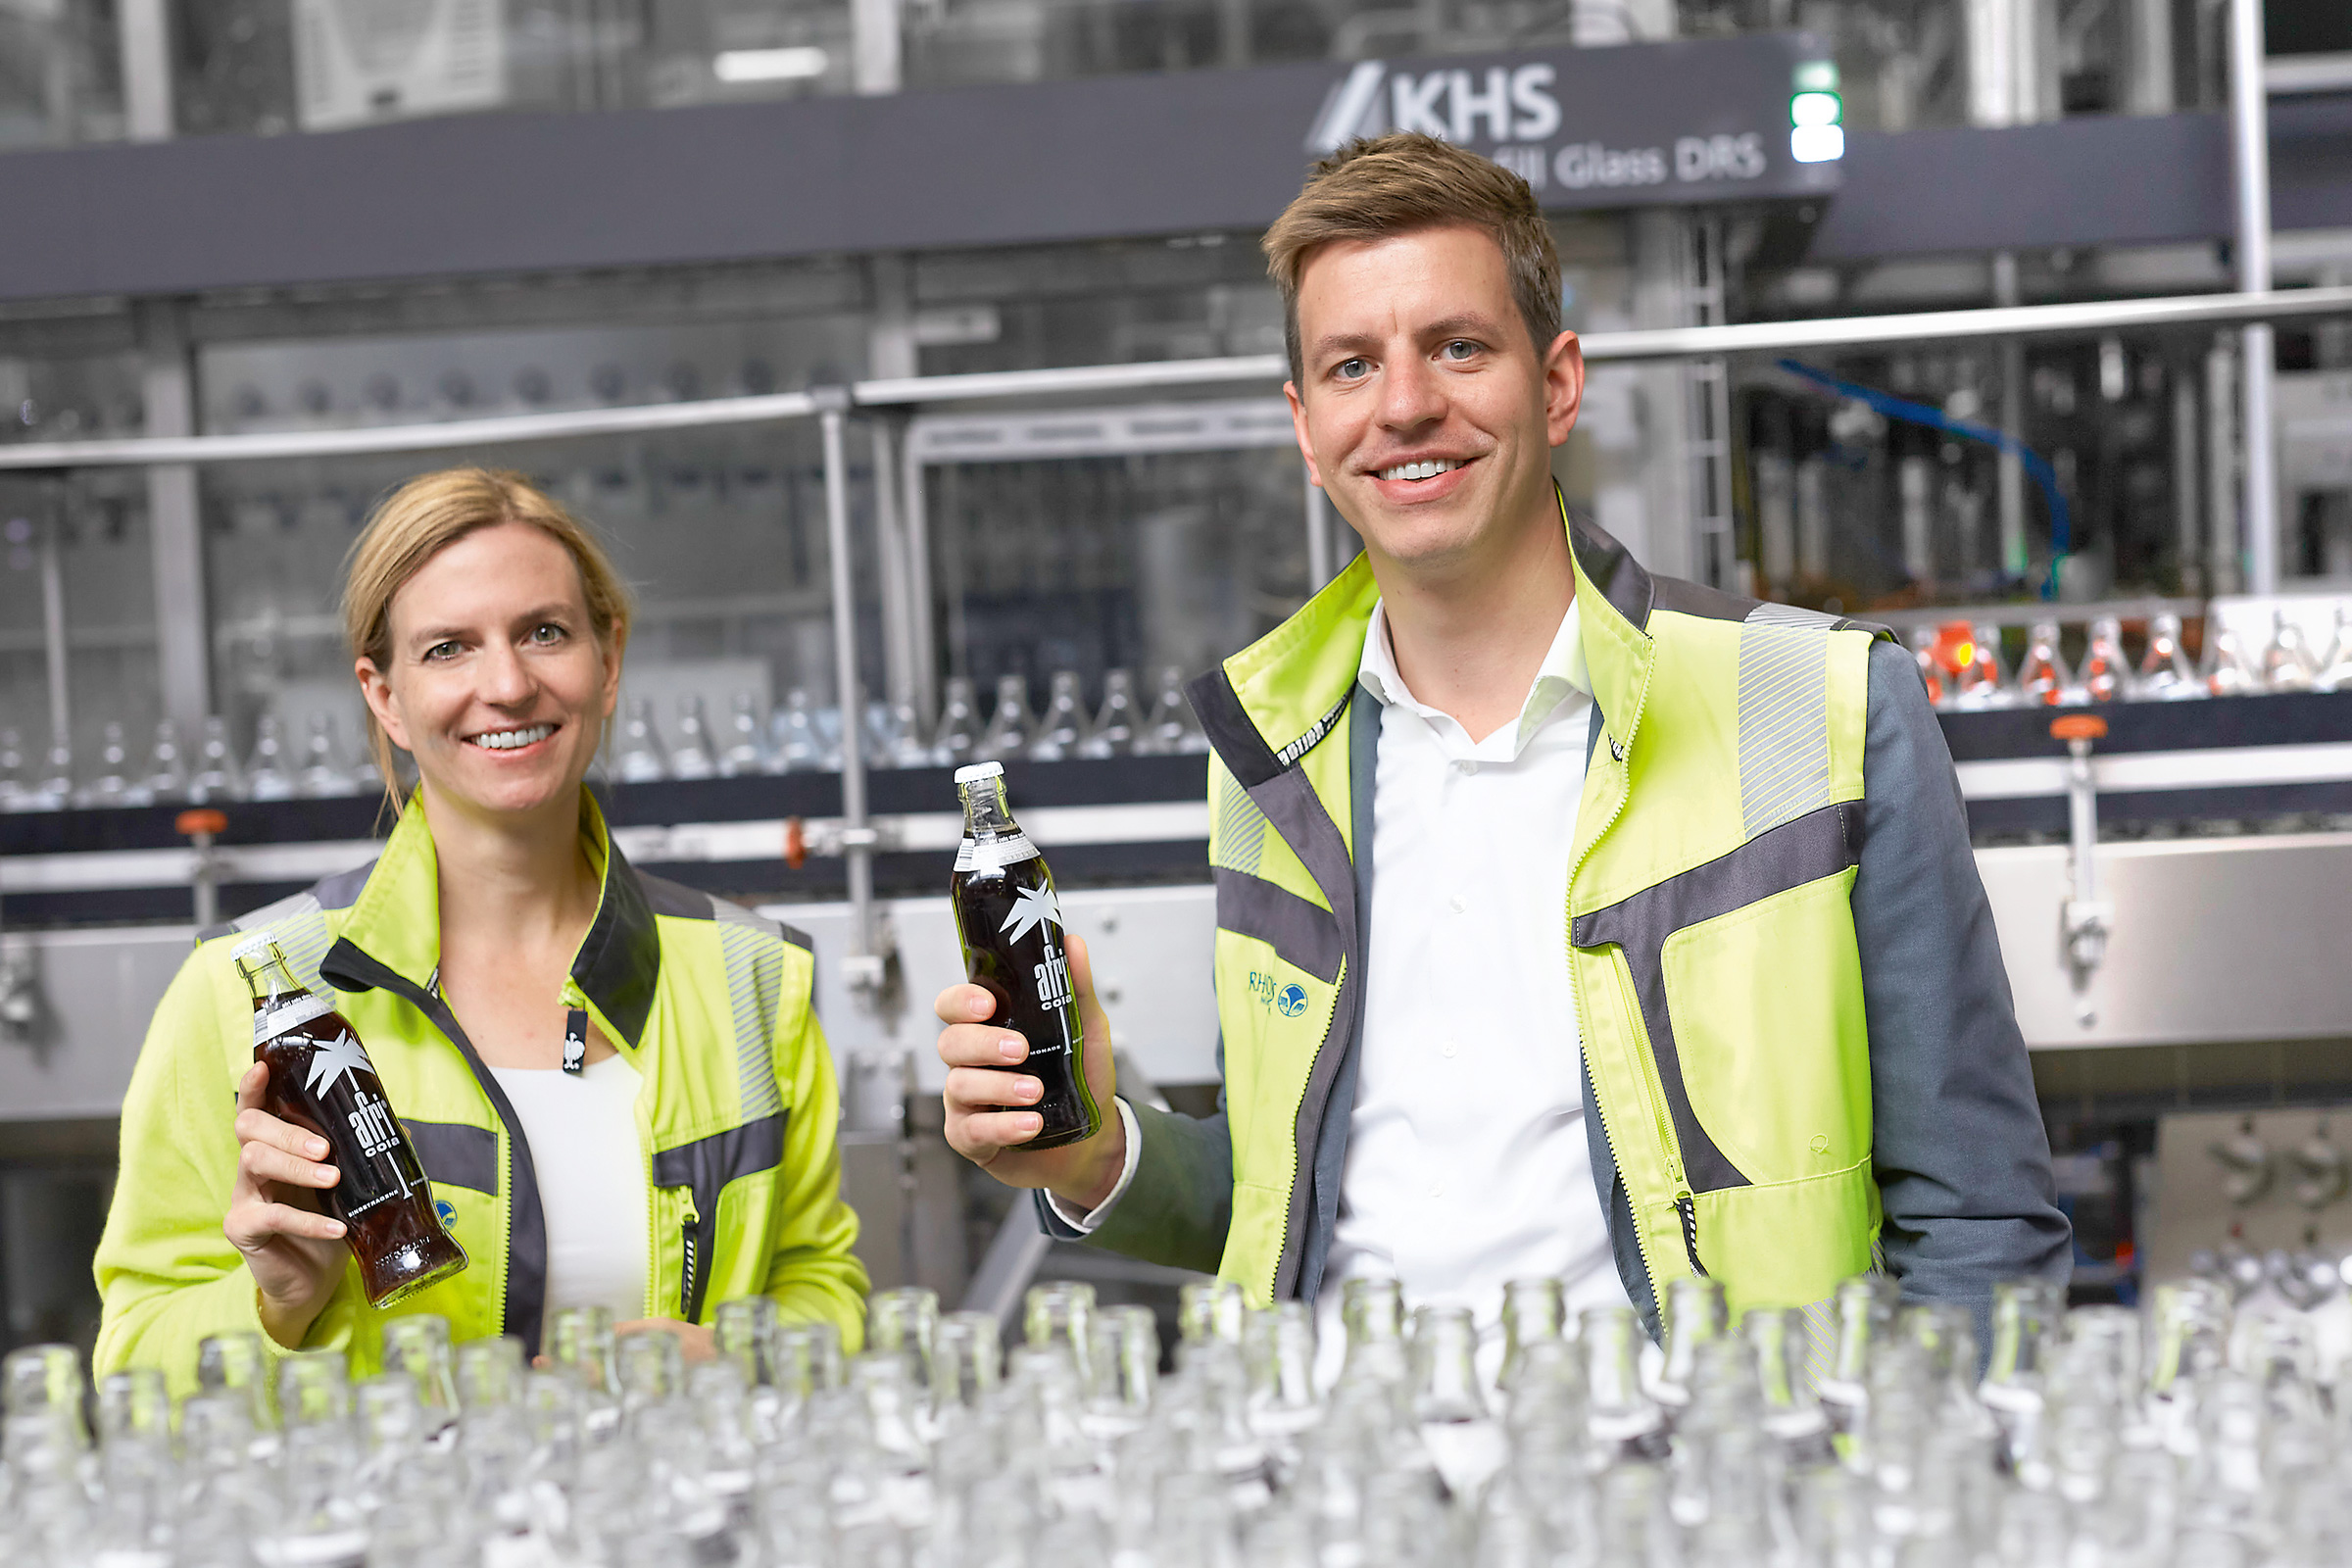 RHODIUS Mineralquellen is managed by sibling managing directors Frauke Helf and Hannes Tack.